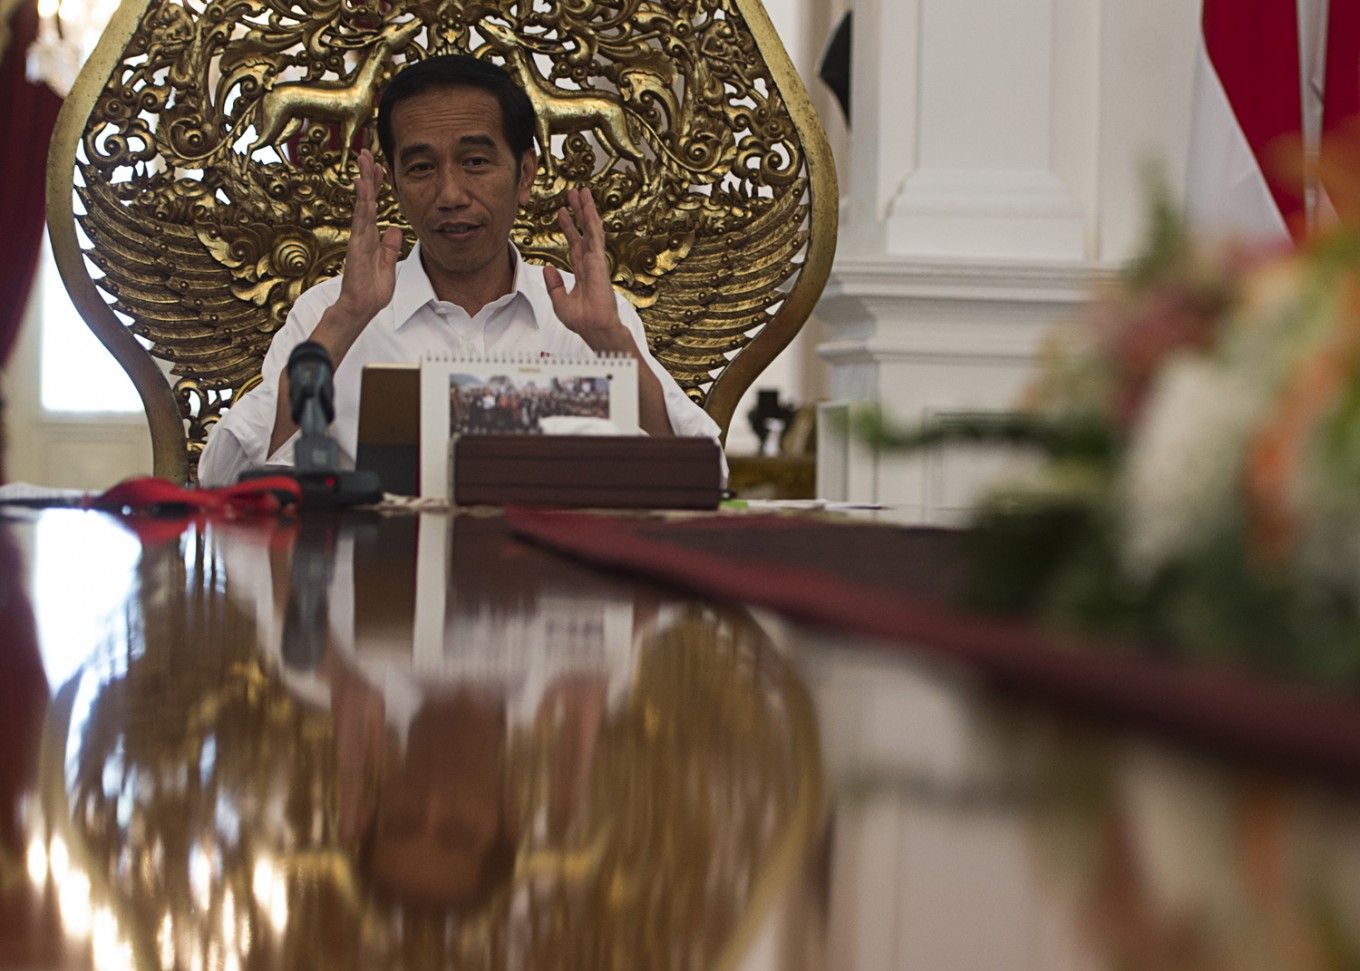 Govt welcomes revision of mass organization law, Jokowi says